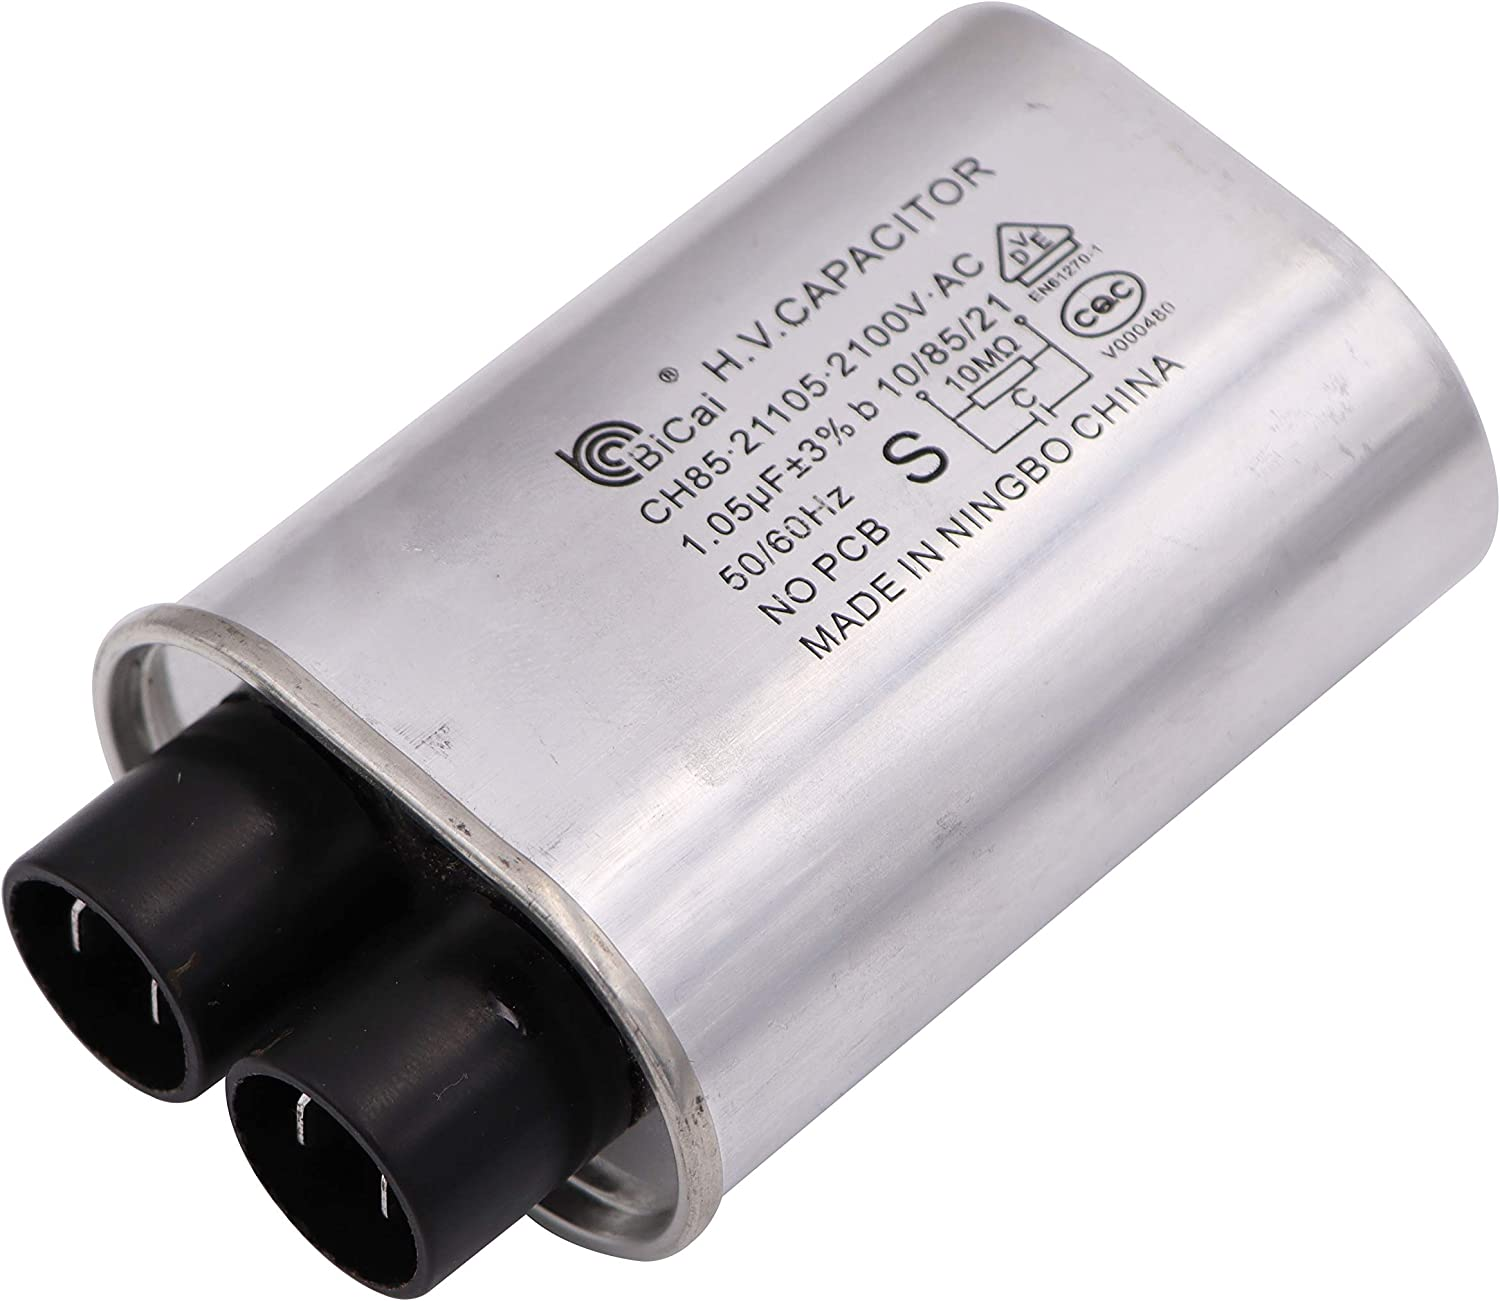 Meter Star Microwave Capacitor Replacement 2100V 1.05uf Compatib